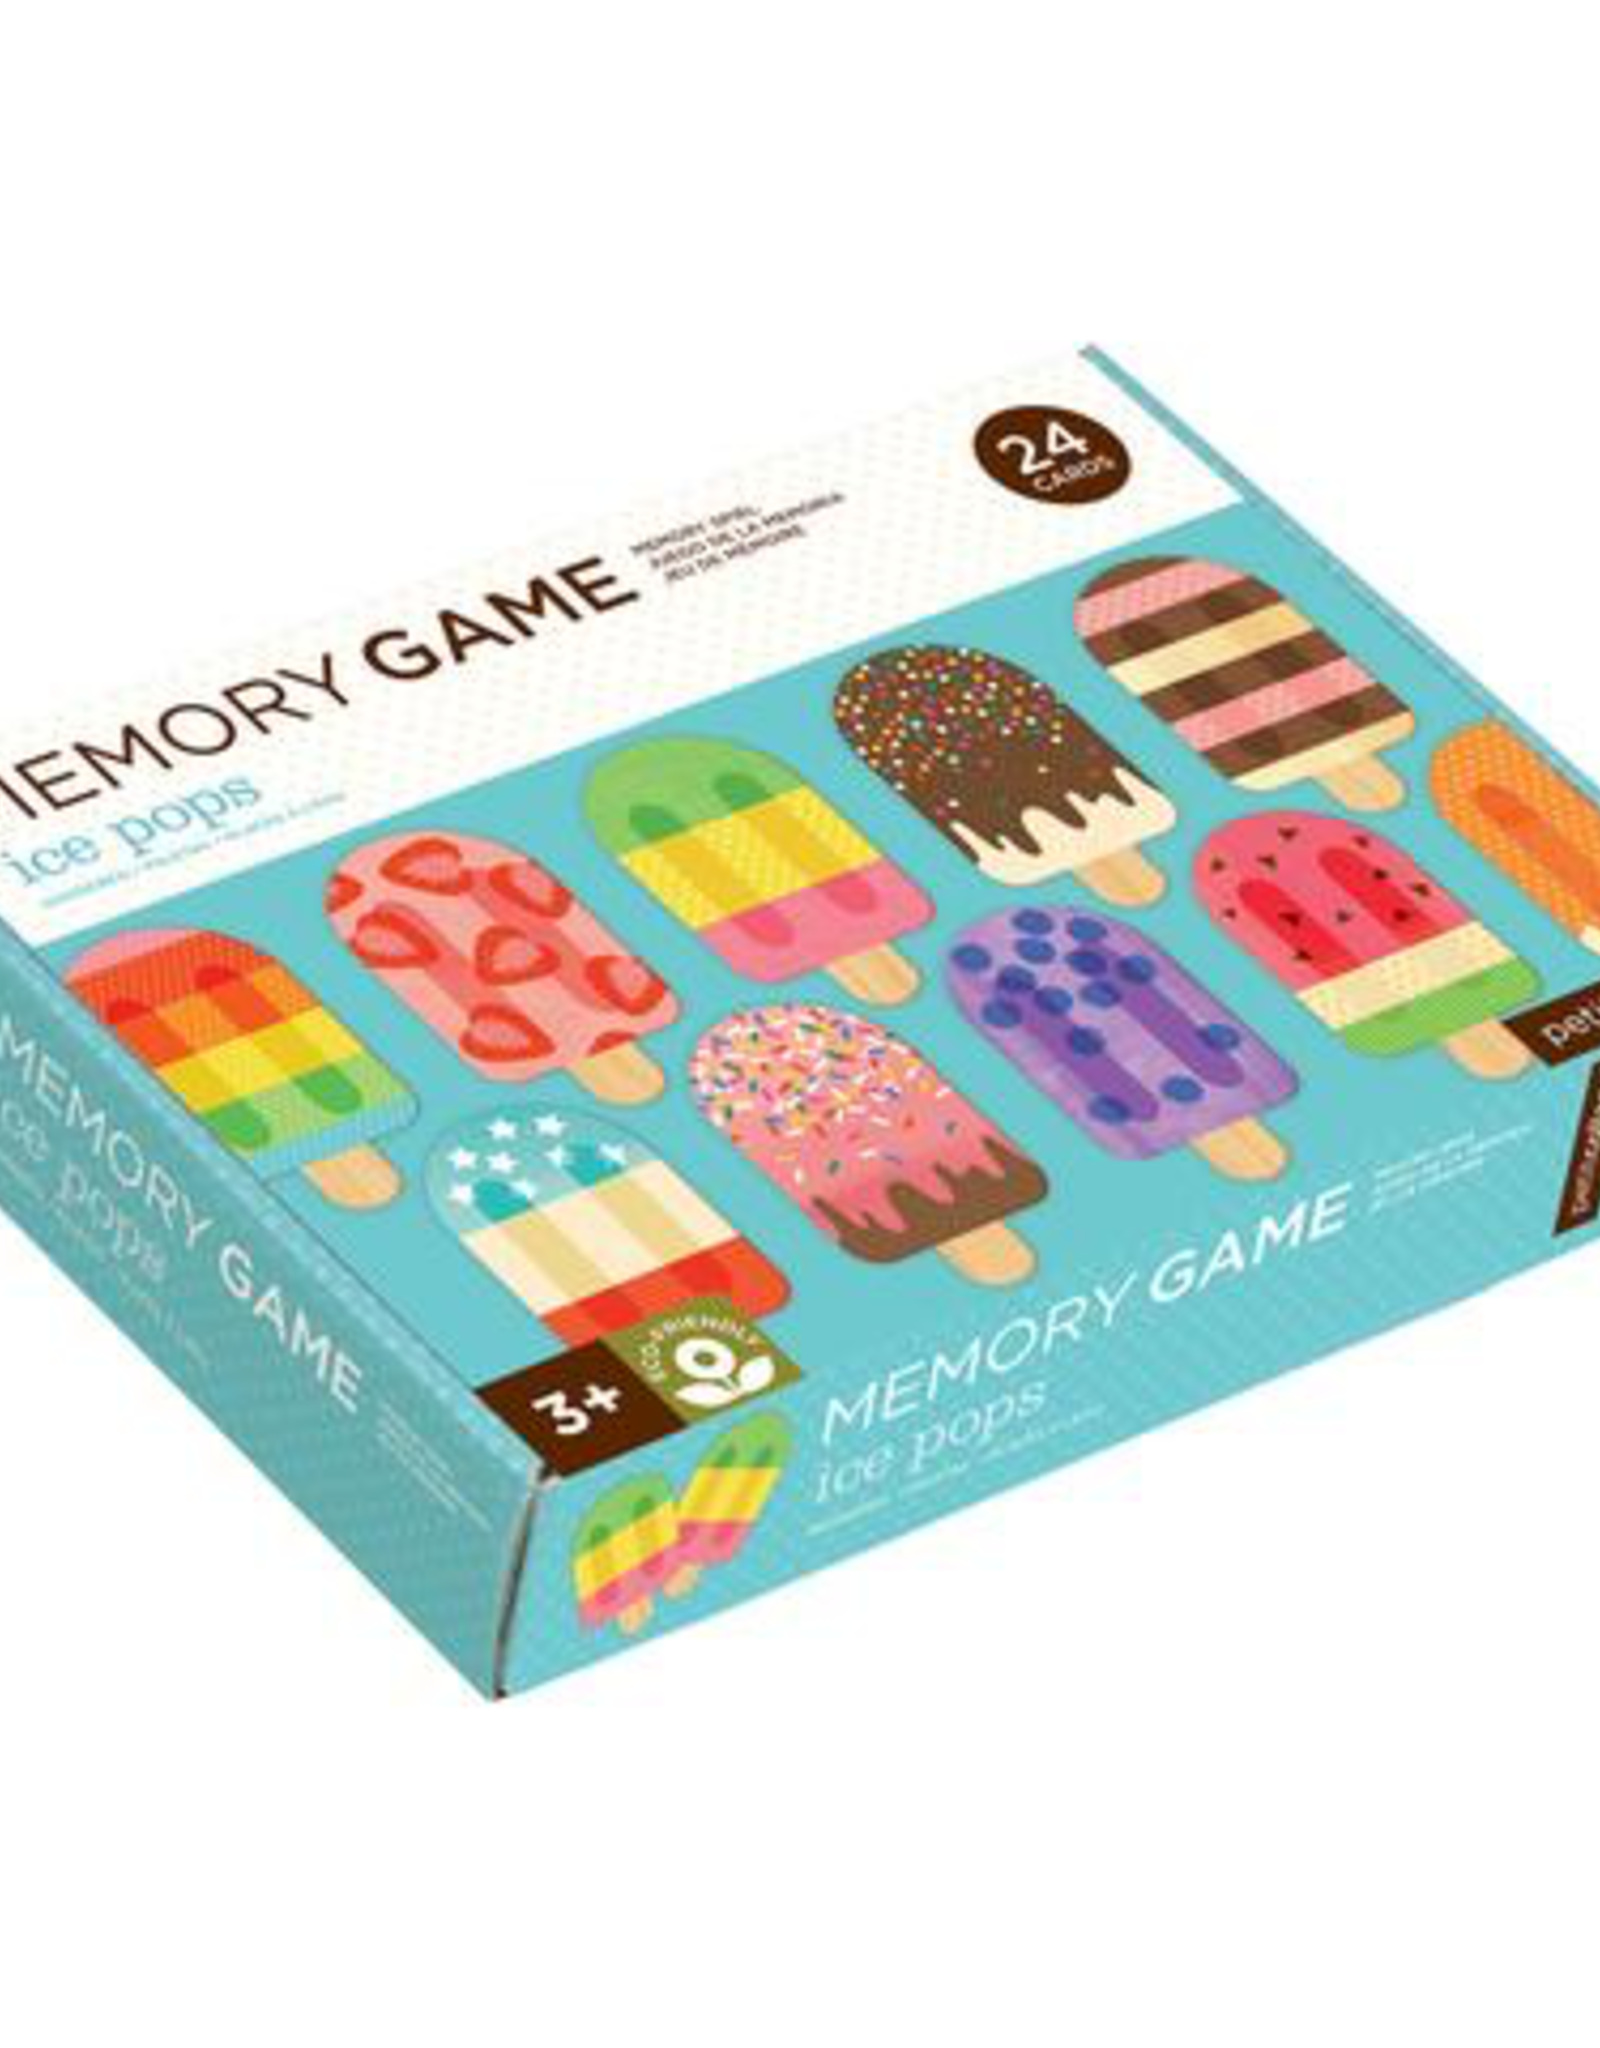 Game, Ice Pops, Memory